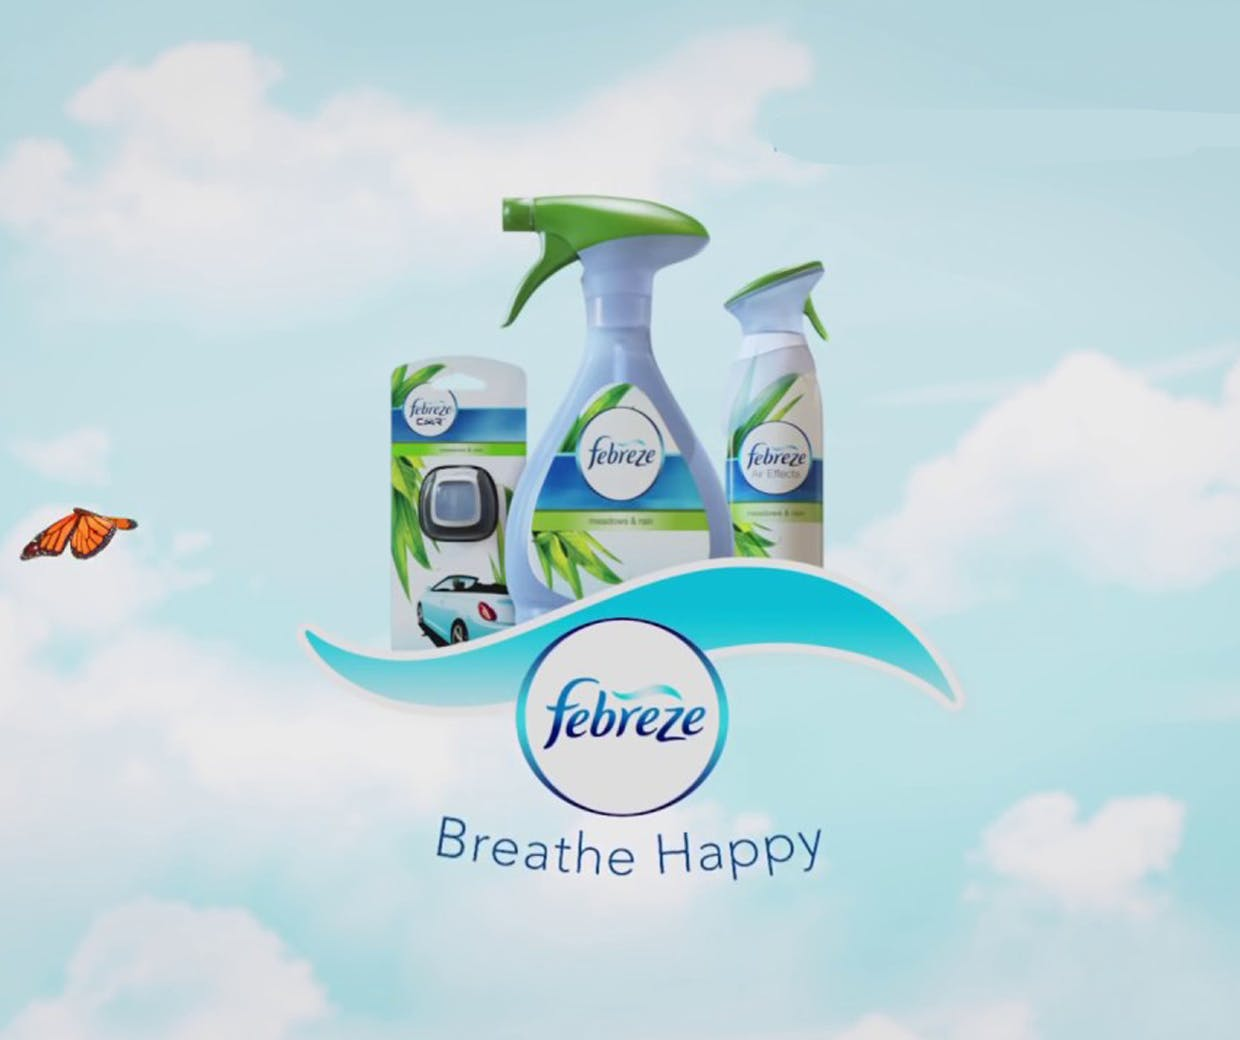 Ritson on how Febreze used consumer insights to drive marketing effectiveness